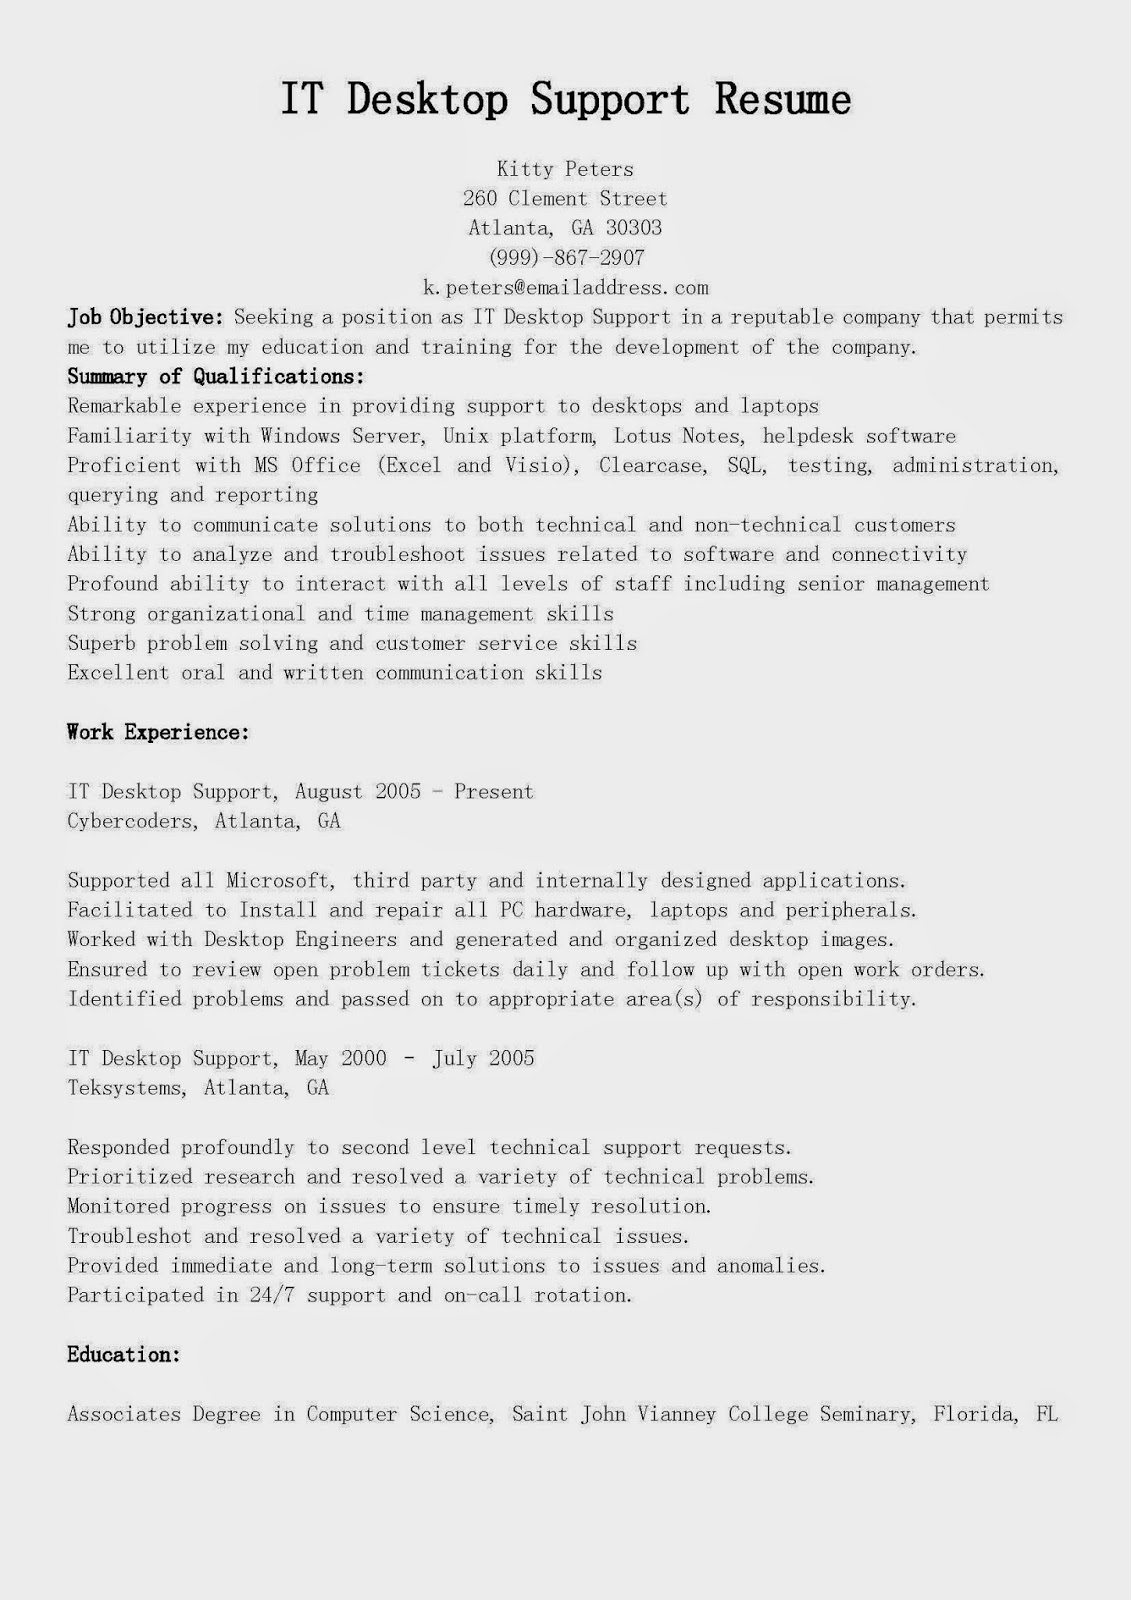 resume samples  it desktop support resume sample